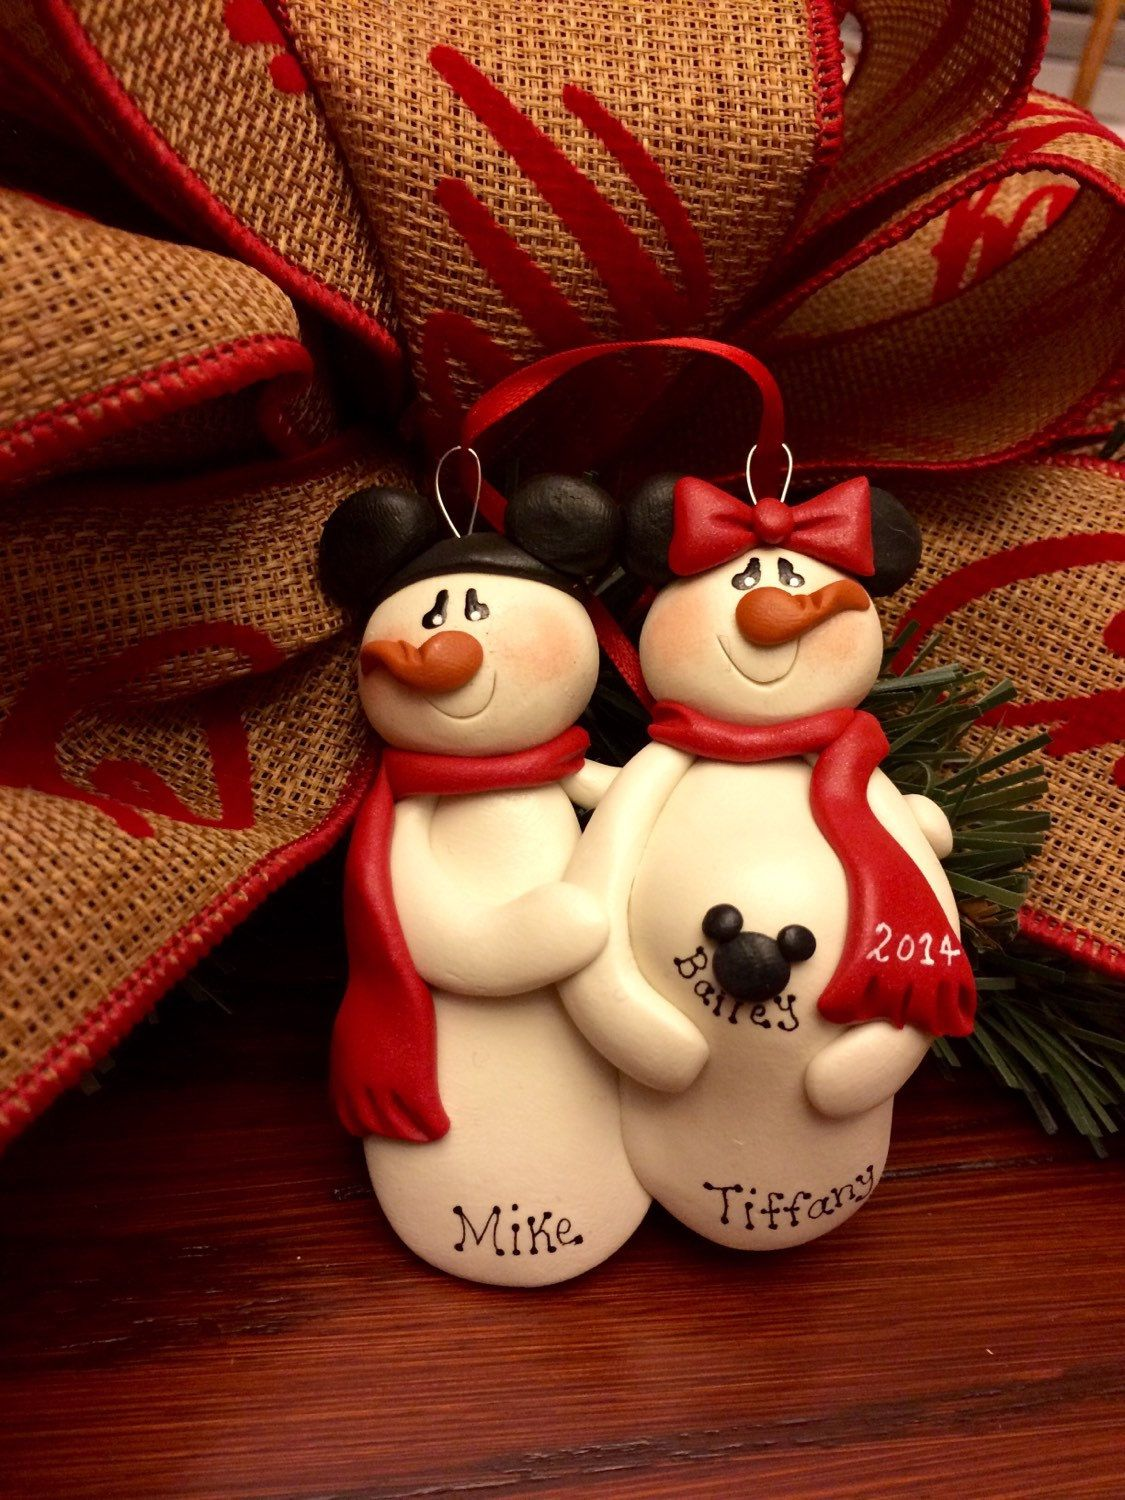 Christmas ornament expecting baby - Personalized Pregnant Expecting Mickey Minnie Disney Couple Christmas Ornament By Mistysclaycuties On Etsy Https